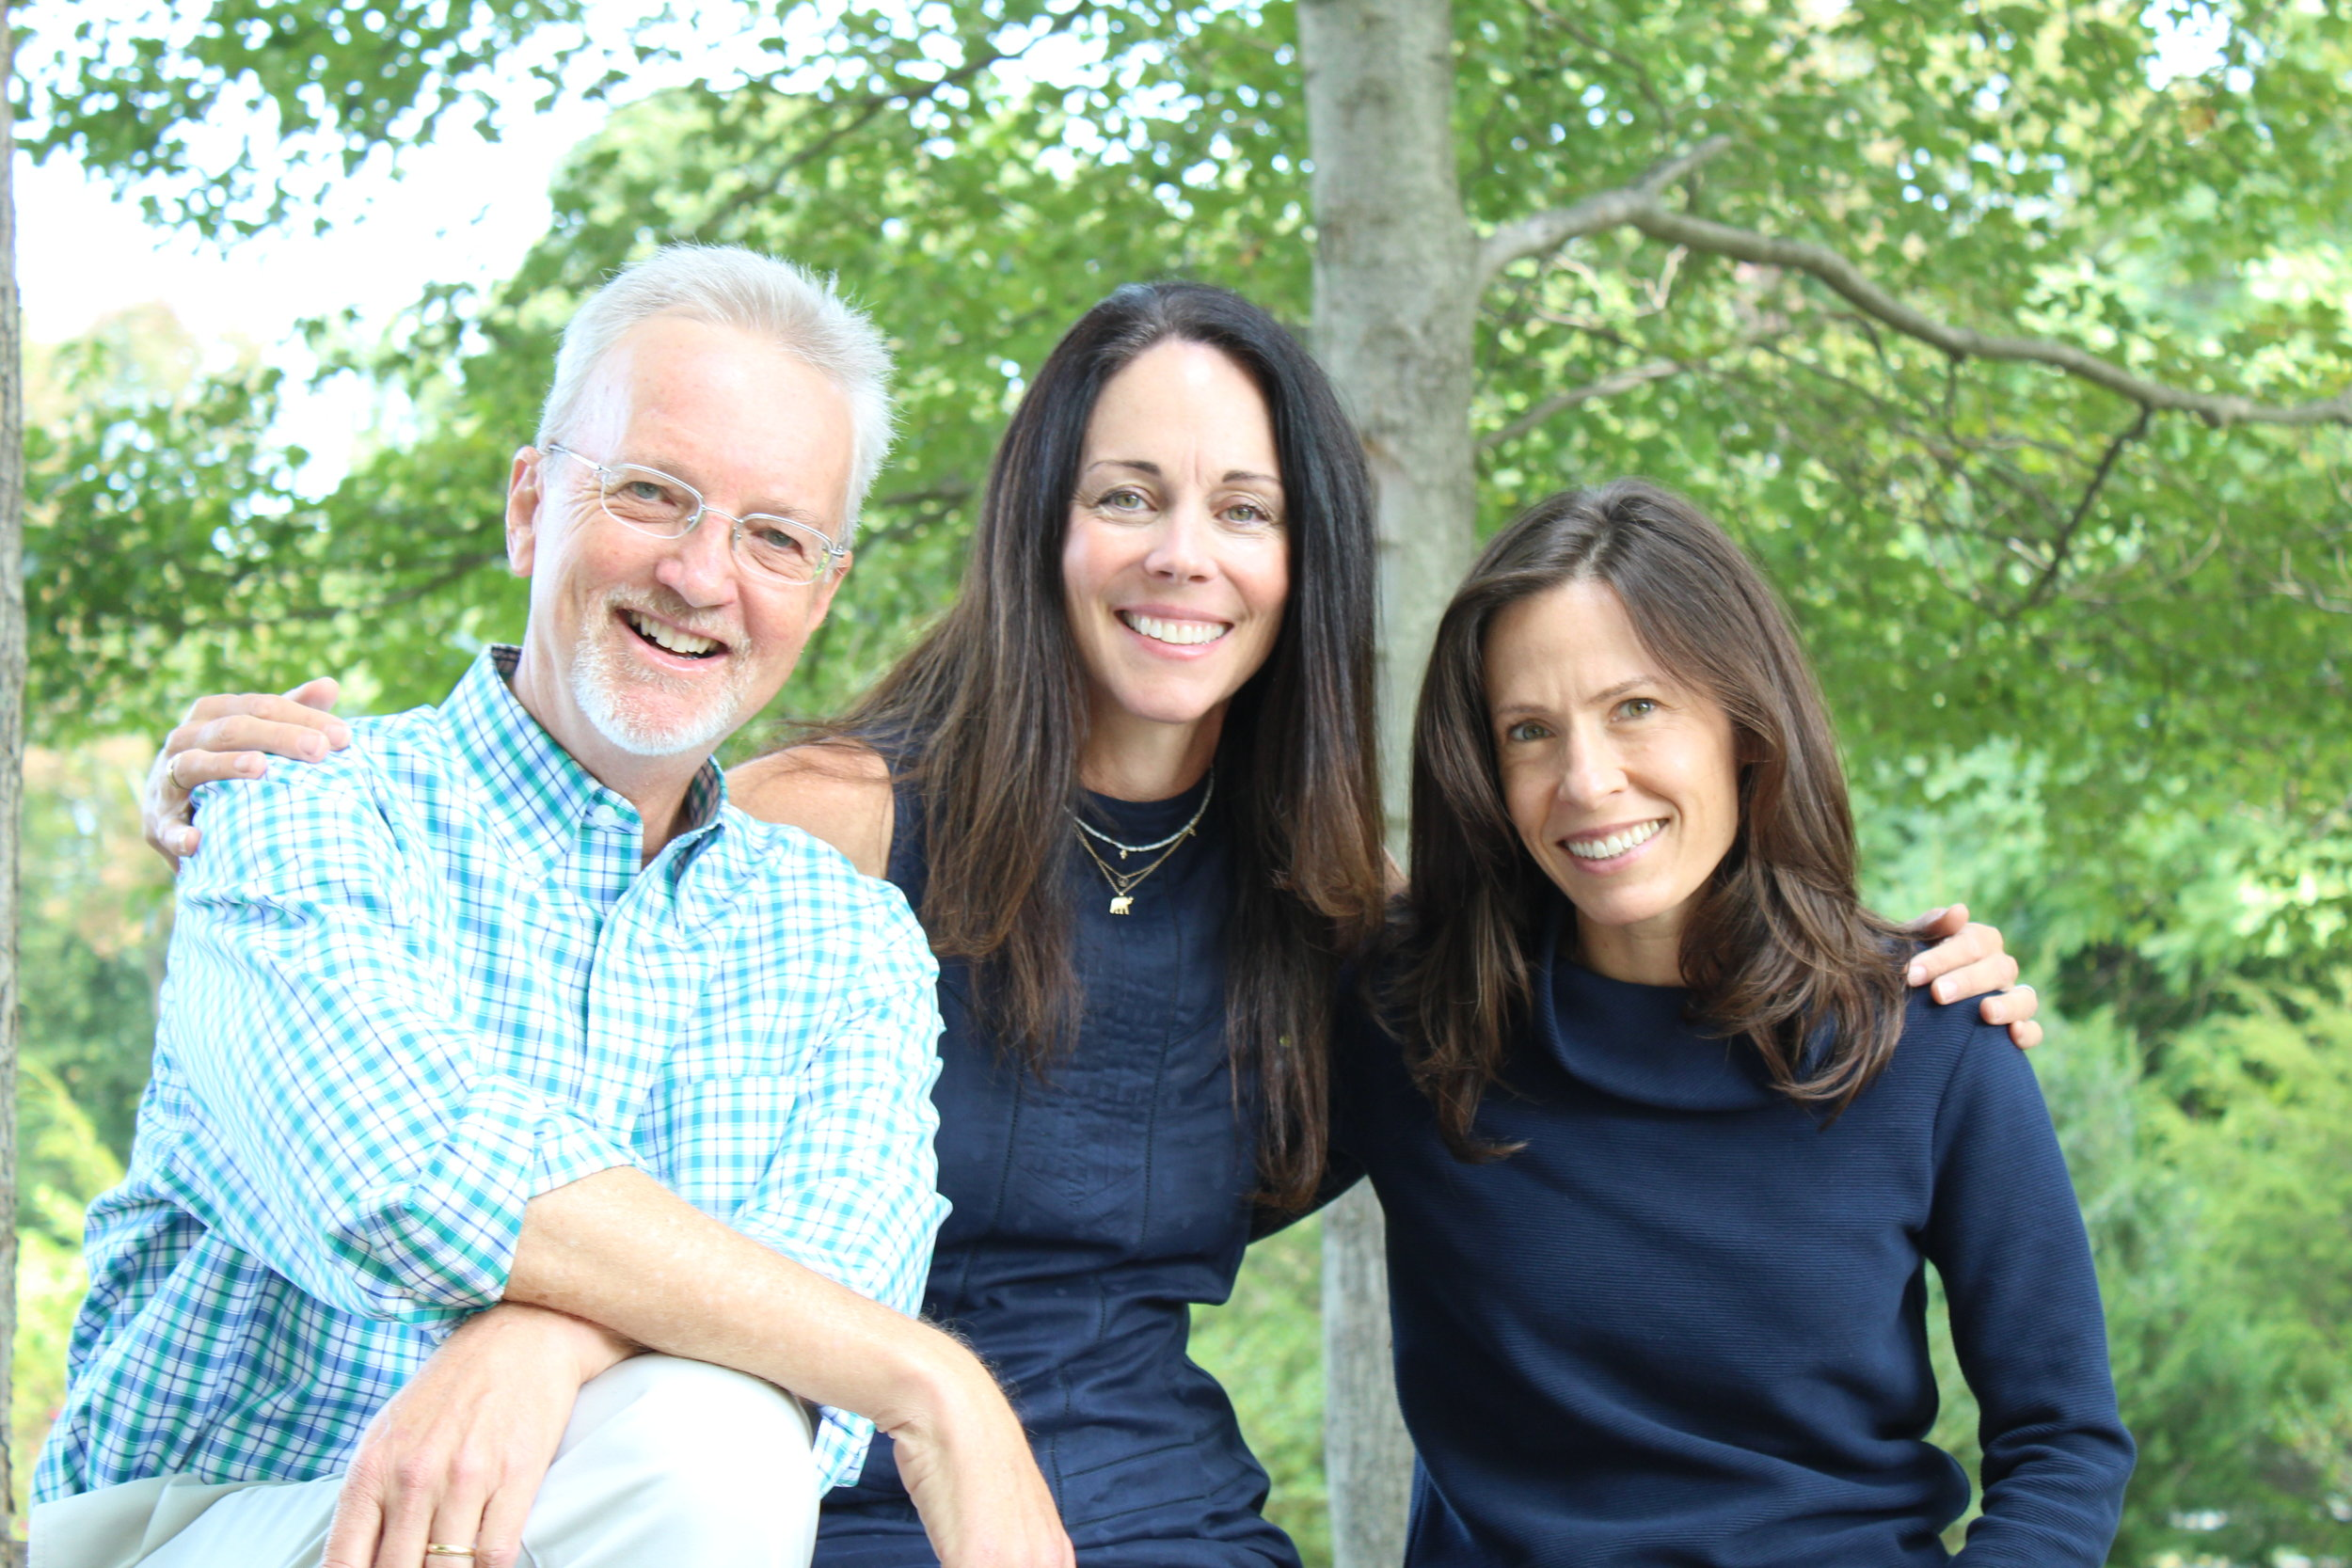 From left, founders Will Heins, Michelle Seaver and Erika Long    Photo credit: Dr. Jeanne Castellucci